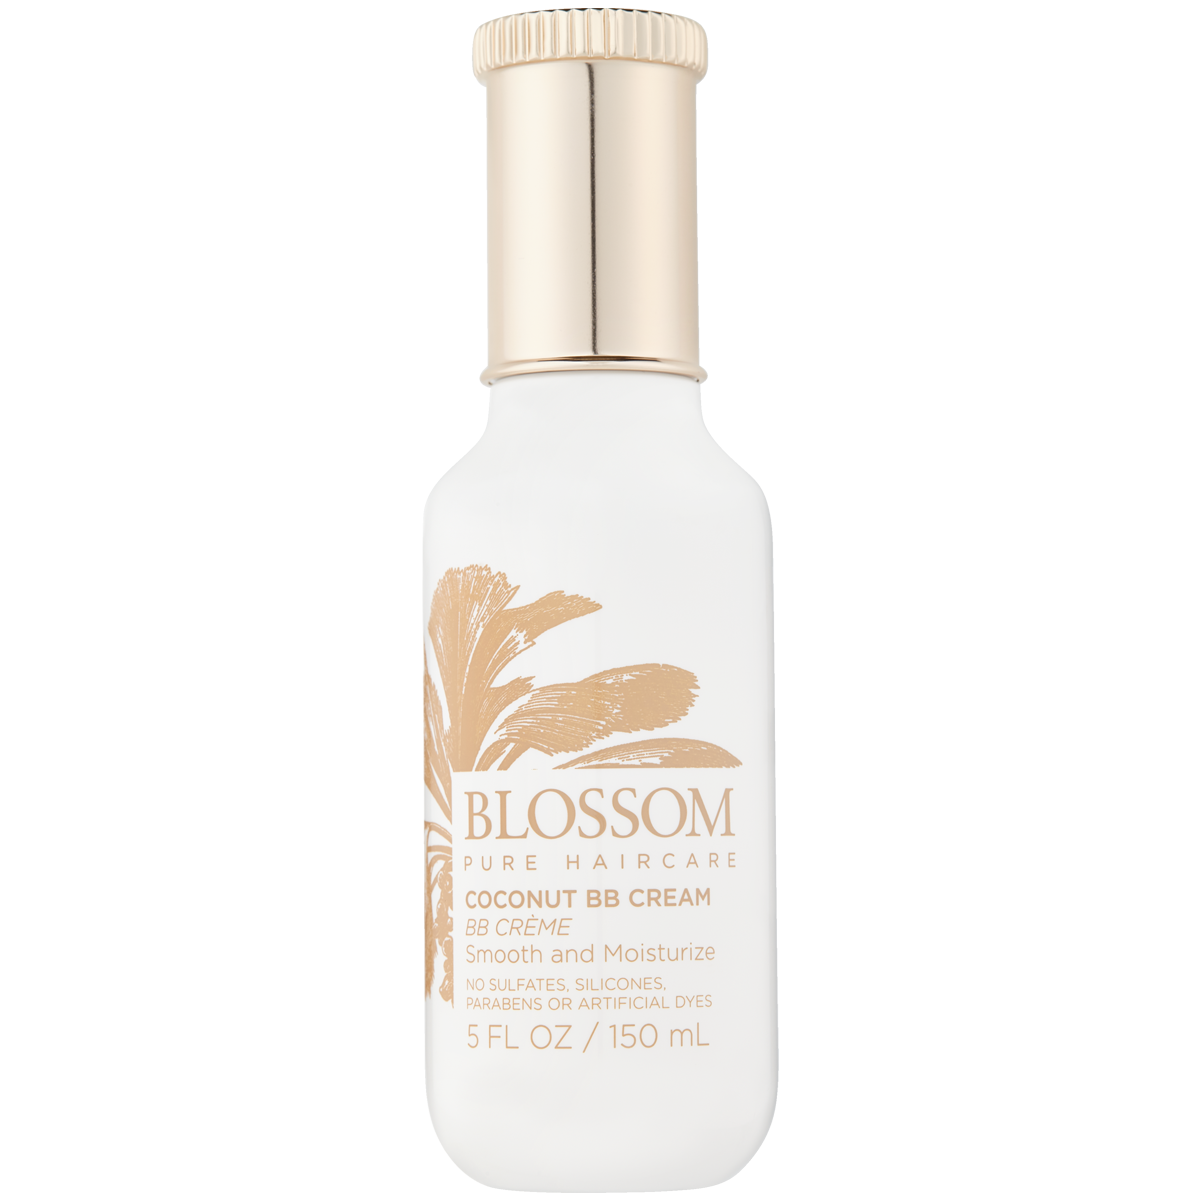 Blossom Pure Haircare Coconut BB Cream